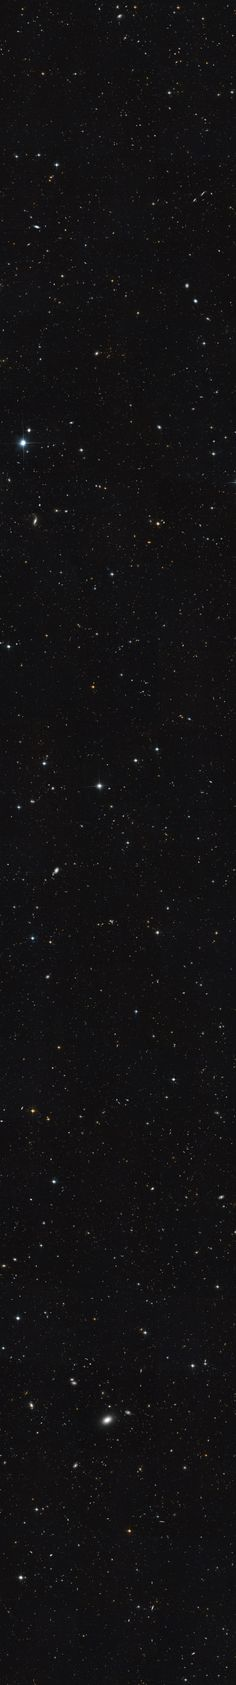 50,000 galaxies in one photo. Larger resolution available on the original site. Alone in this universe, LOL.